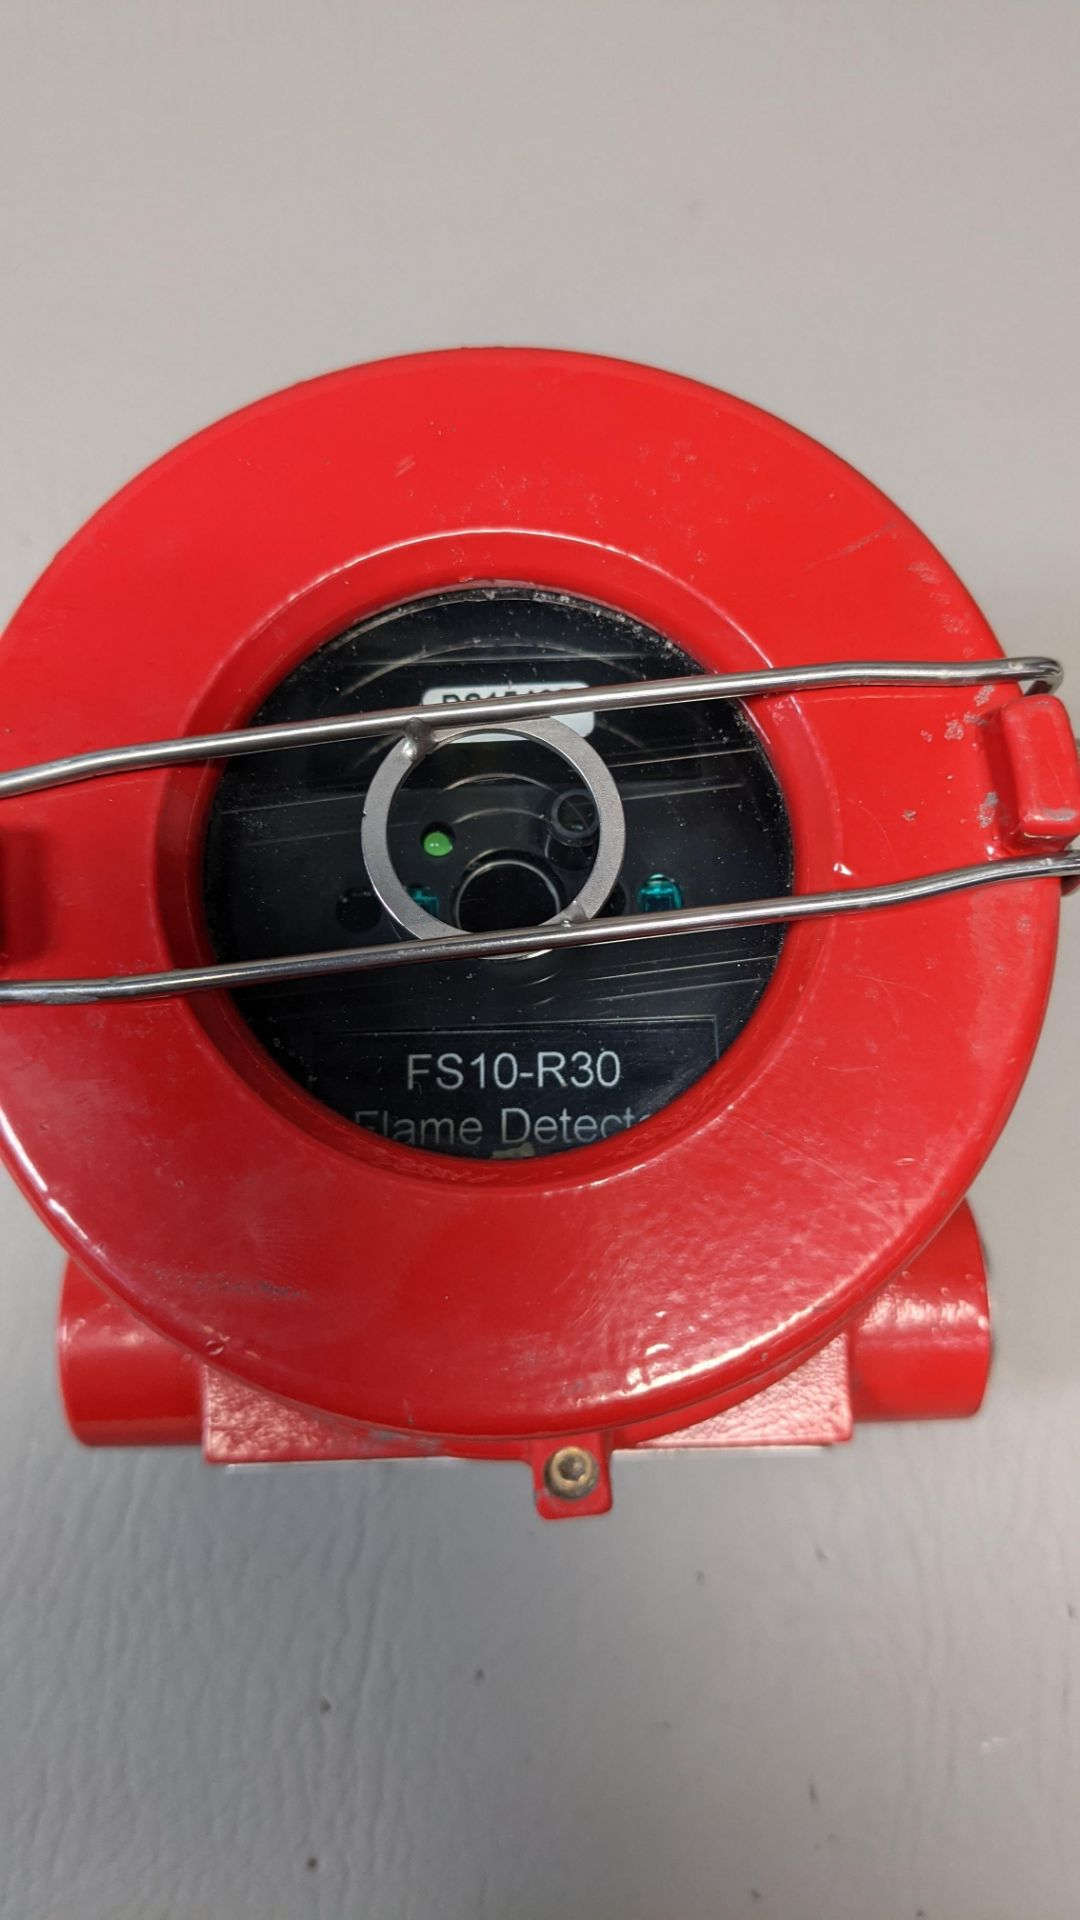 FIRE SENTRY CORP FLAME DETECTOR - Image 3 of 3